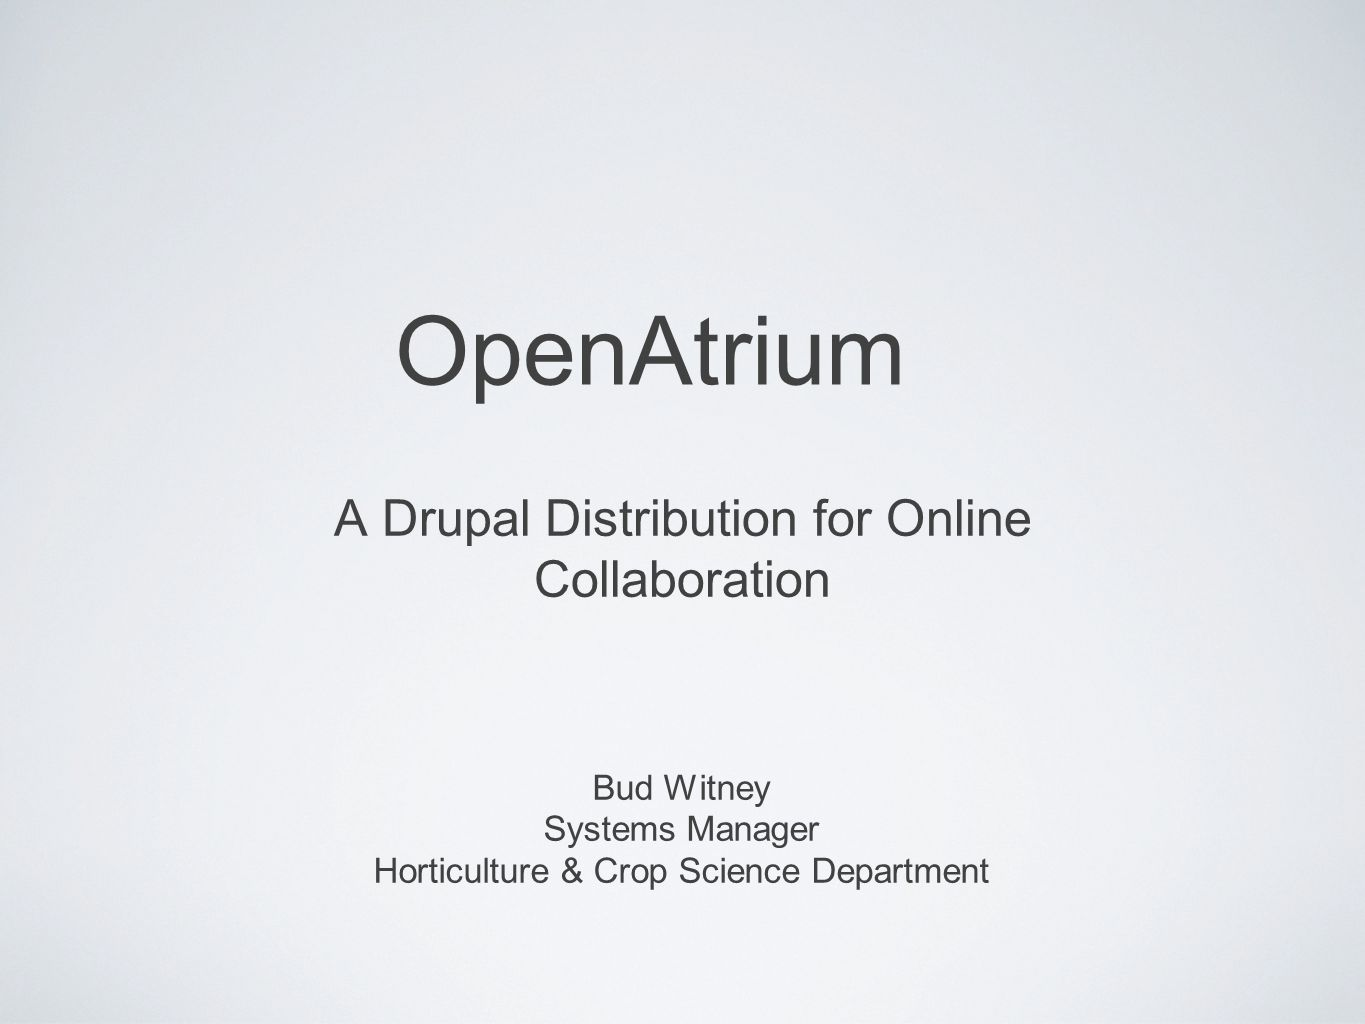 OpenAtrium A Drupal Distribution for Online Collaboration Bud Witney Systems Manager Horticulture & Crop Science Department